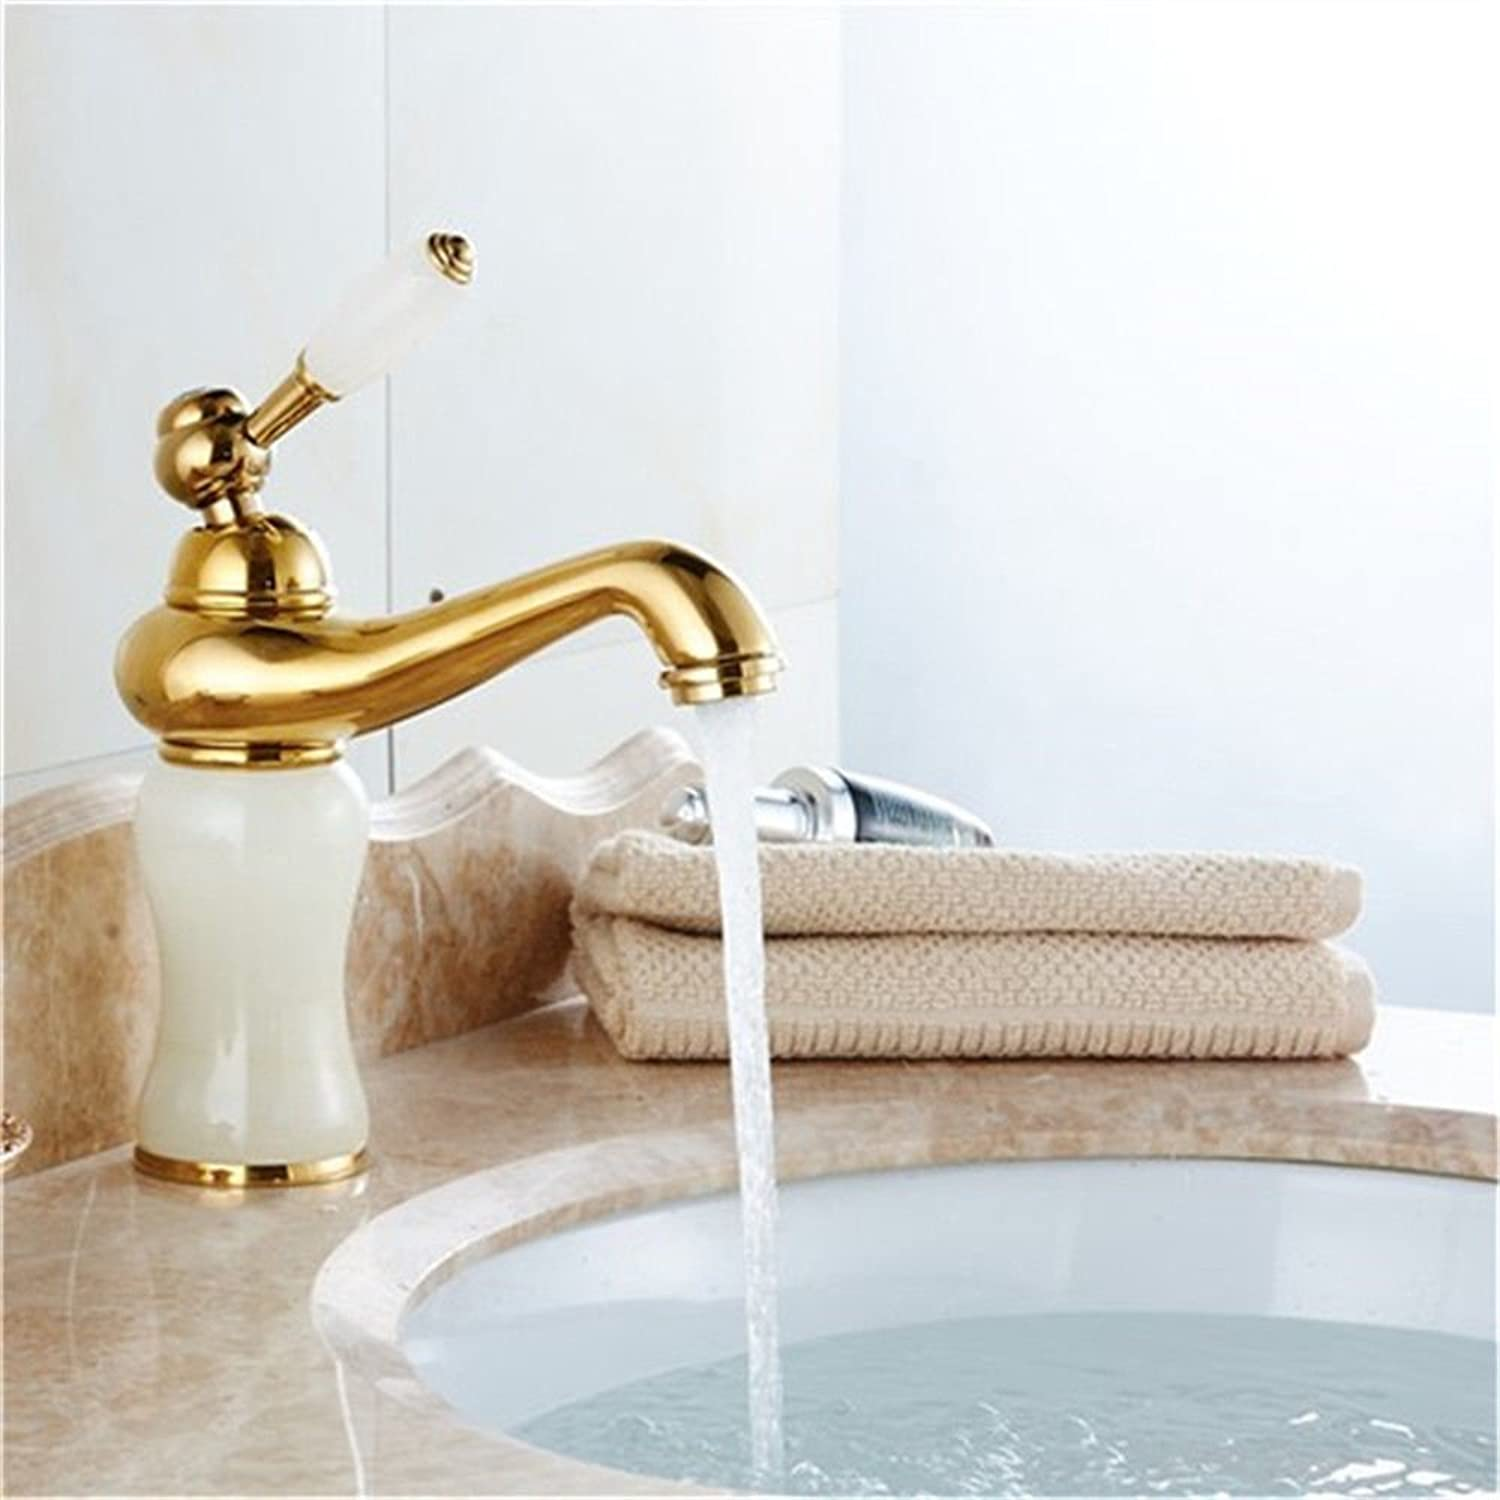 Oudan Bathroom Sink Basin Tap Brass Mixer Tap Washroom Mixer Faucet Antique Basin Mixer Taps Jade gold pink gold mixer console basin single-basin water faucet K